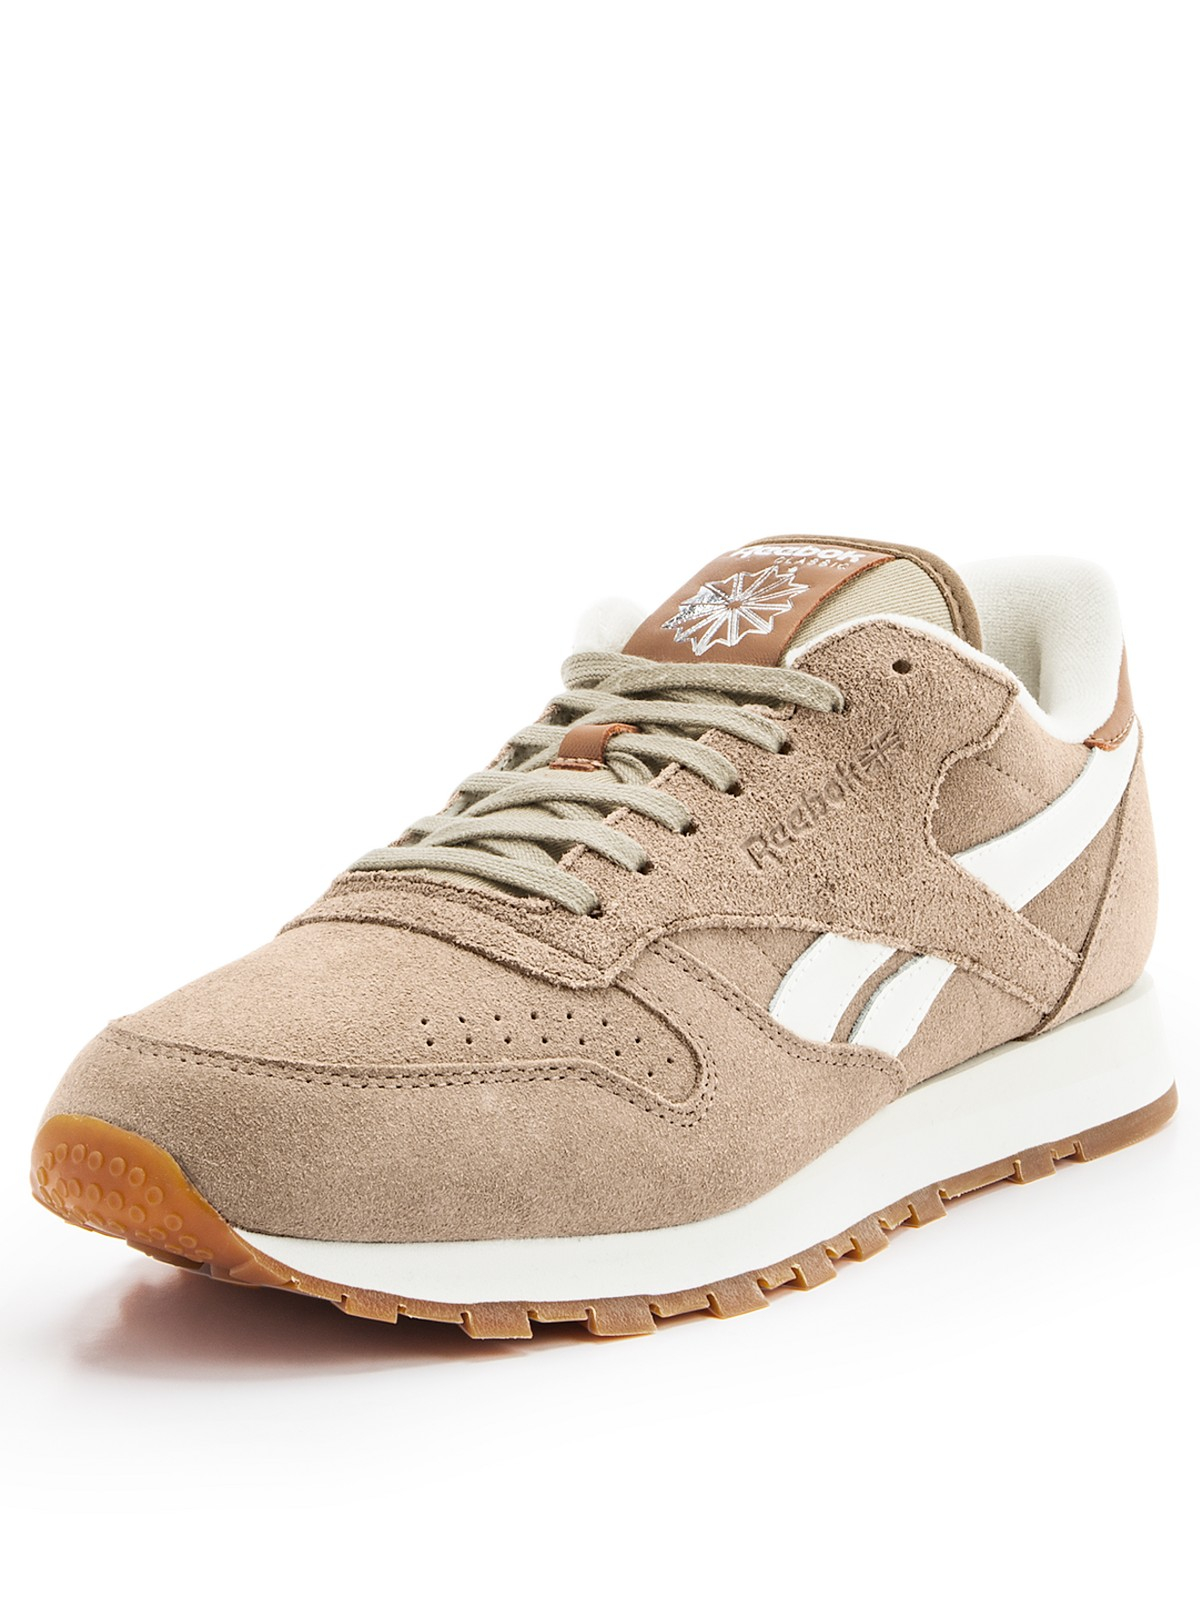 reebok classic leather suede trainers in beige for men lyst. Black Bedroom Furniture Sets. Home Design Ideas